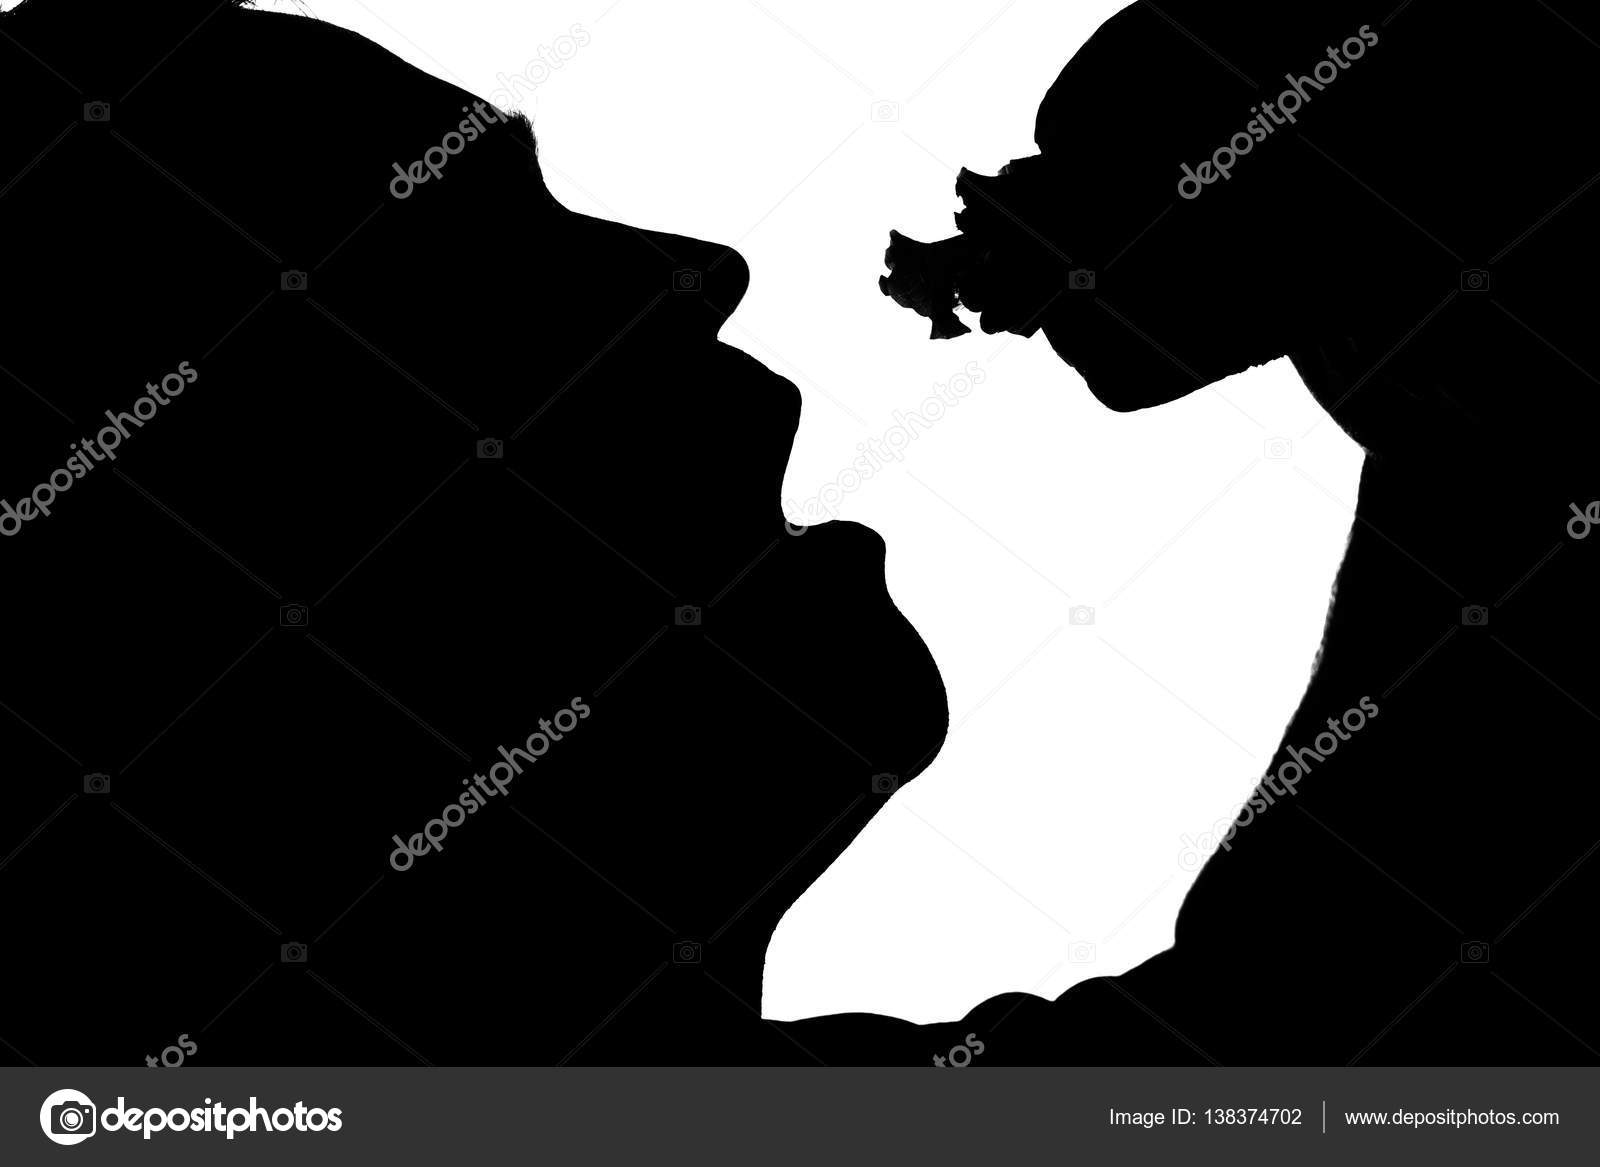 Black And White Silhouette Of A Man With Overweight Eating Fast Food